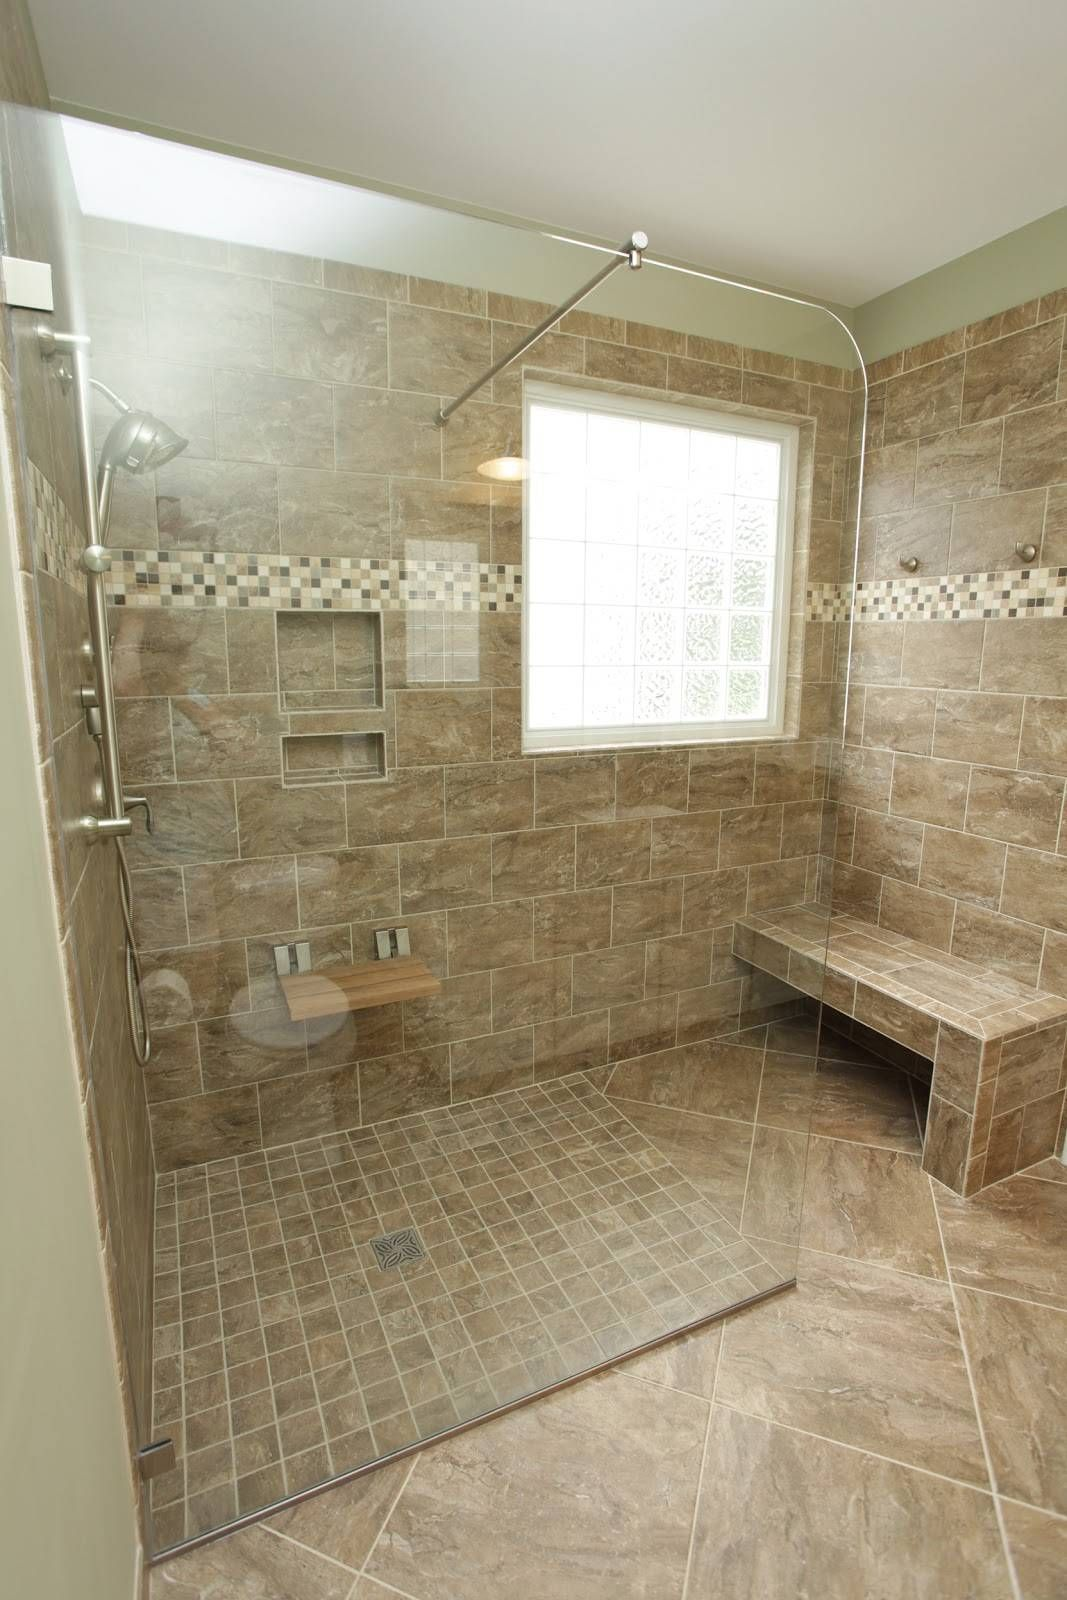 Built In Shower Bench Idea Stall With Seat House Design And Office Best Awesome Walk Tub Price D Bathroom Shower Stalls Shower Stall Small Bathroom With Shower